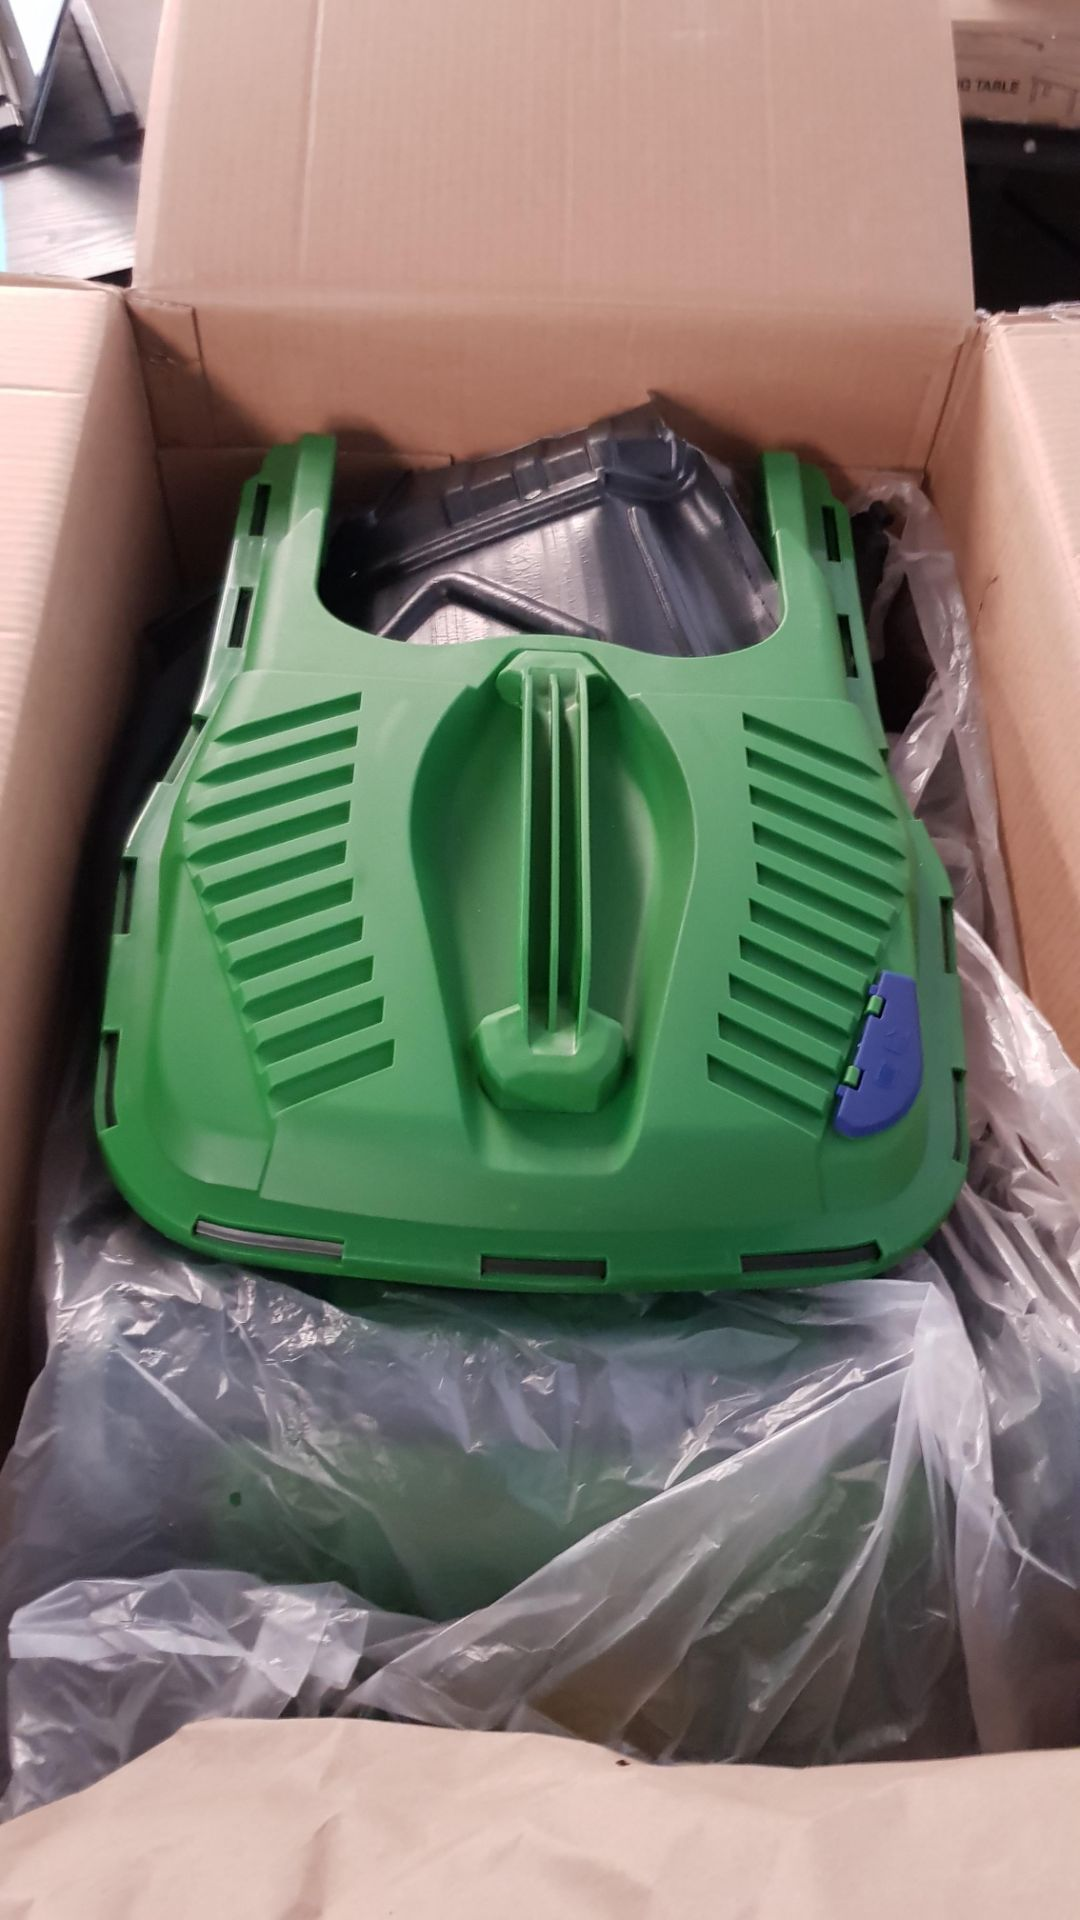 (P9) 1x Powerbase 37cm 40V Cordless Lawn Mower. RRP £199.00. Unit Appears Clean, As New & Unused. - Image 5 of 5